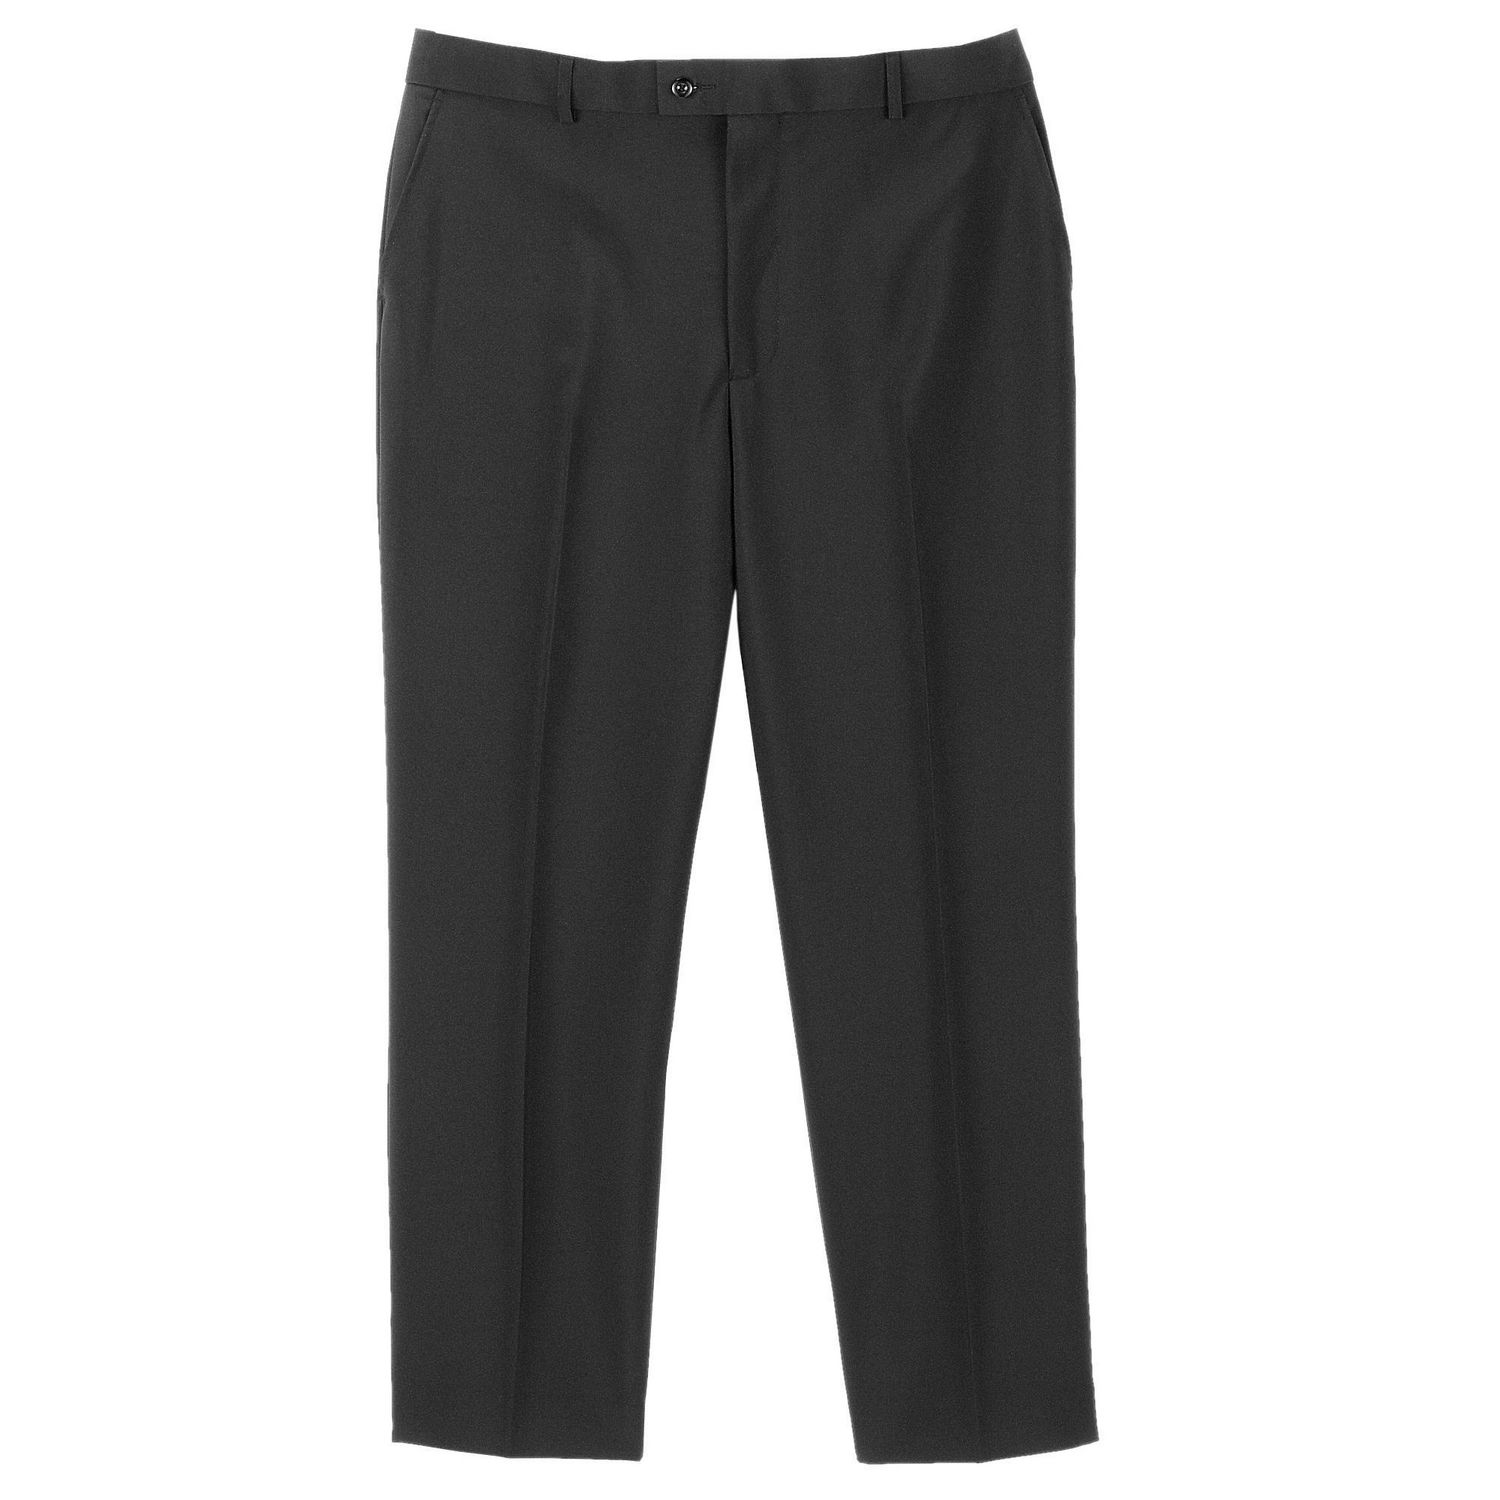 b3f67778549 George Men s Oversize Dress Pant - image 1 of 1 zoomed image